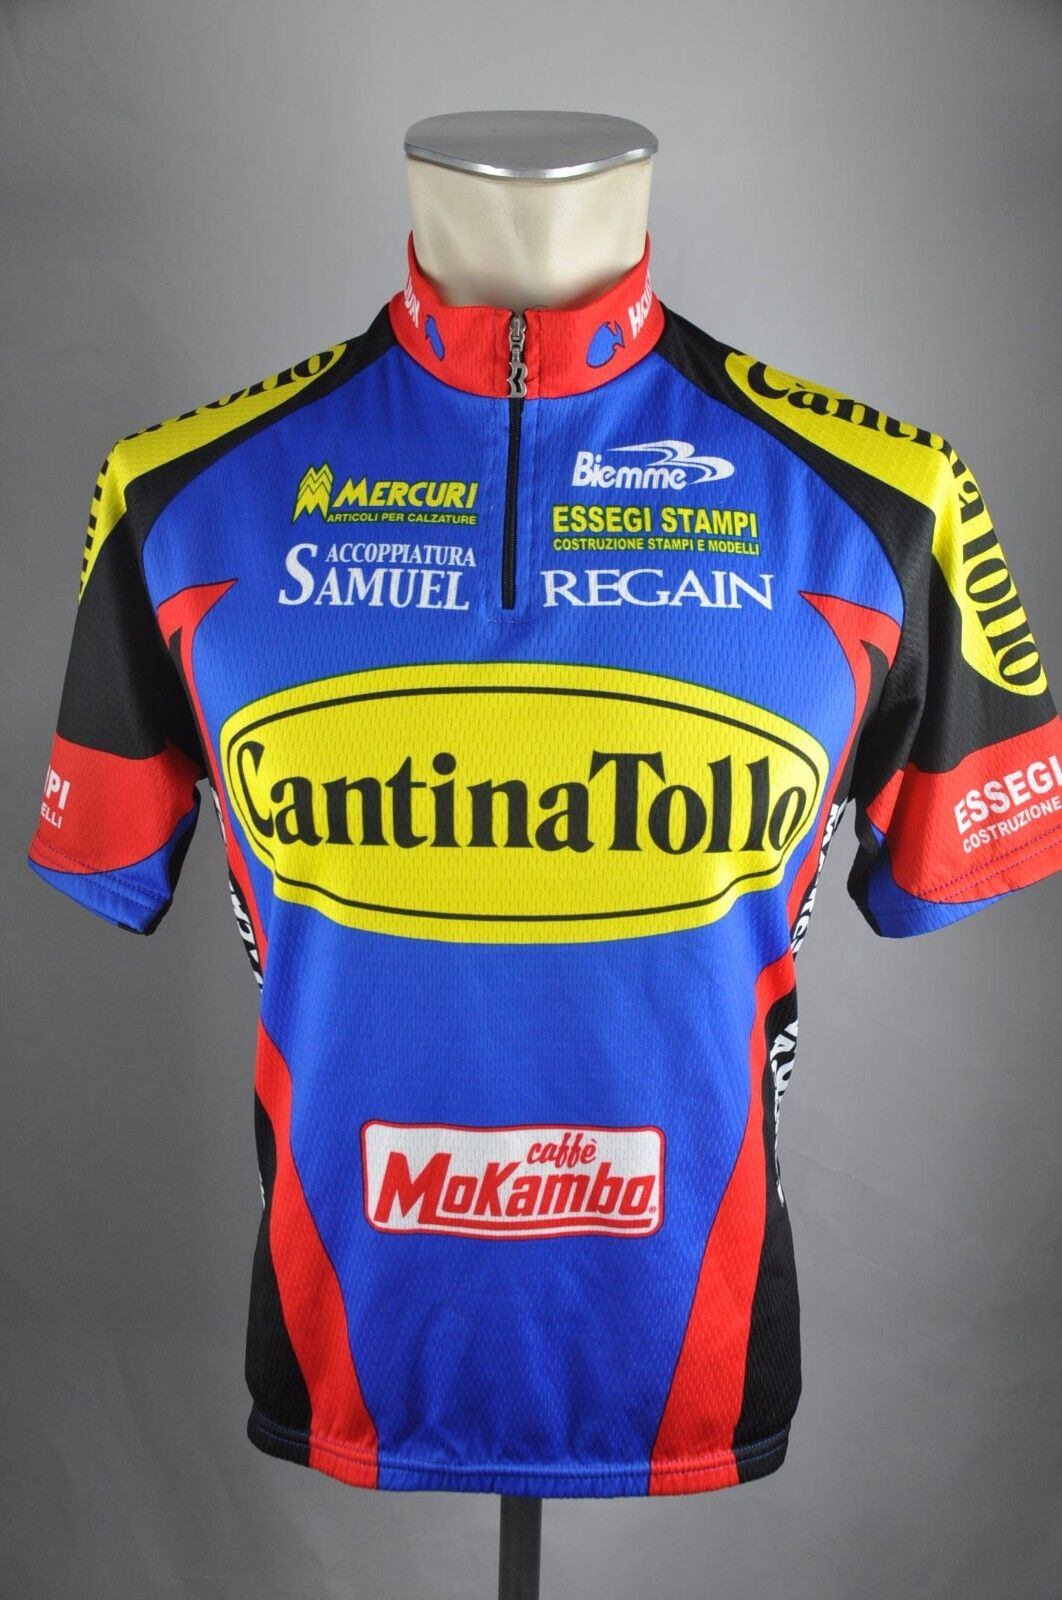 CantinaTollo Team Trikot Biemme  Gr. M BW 52cm Bike cycling jersey Shirt HZ1  hot limited edition